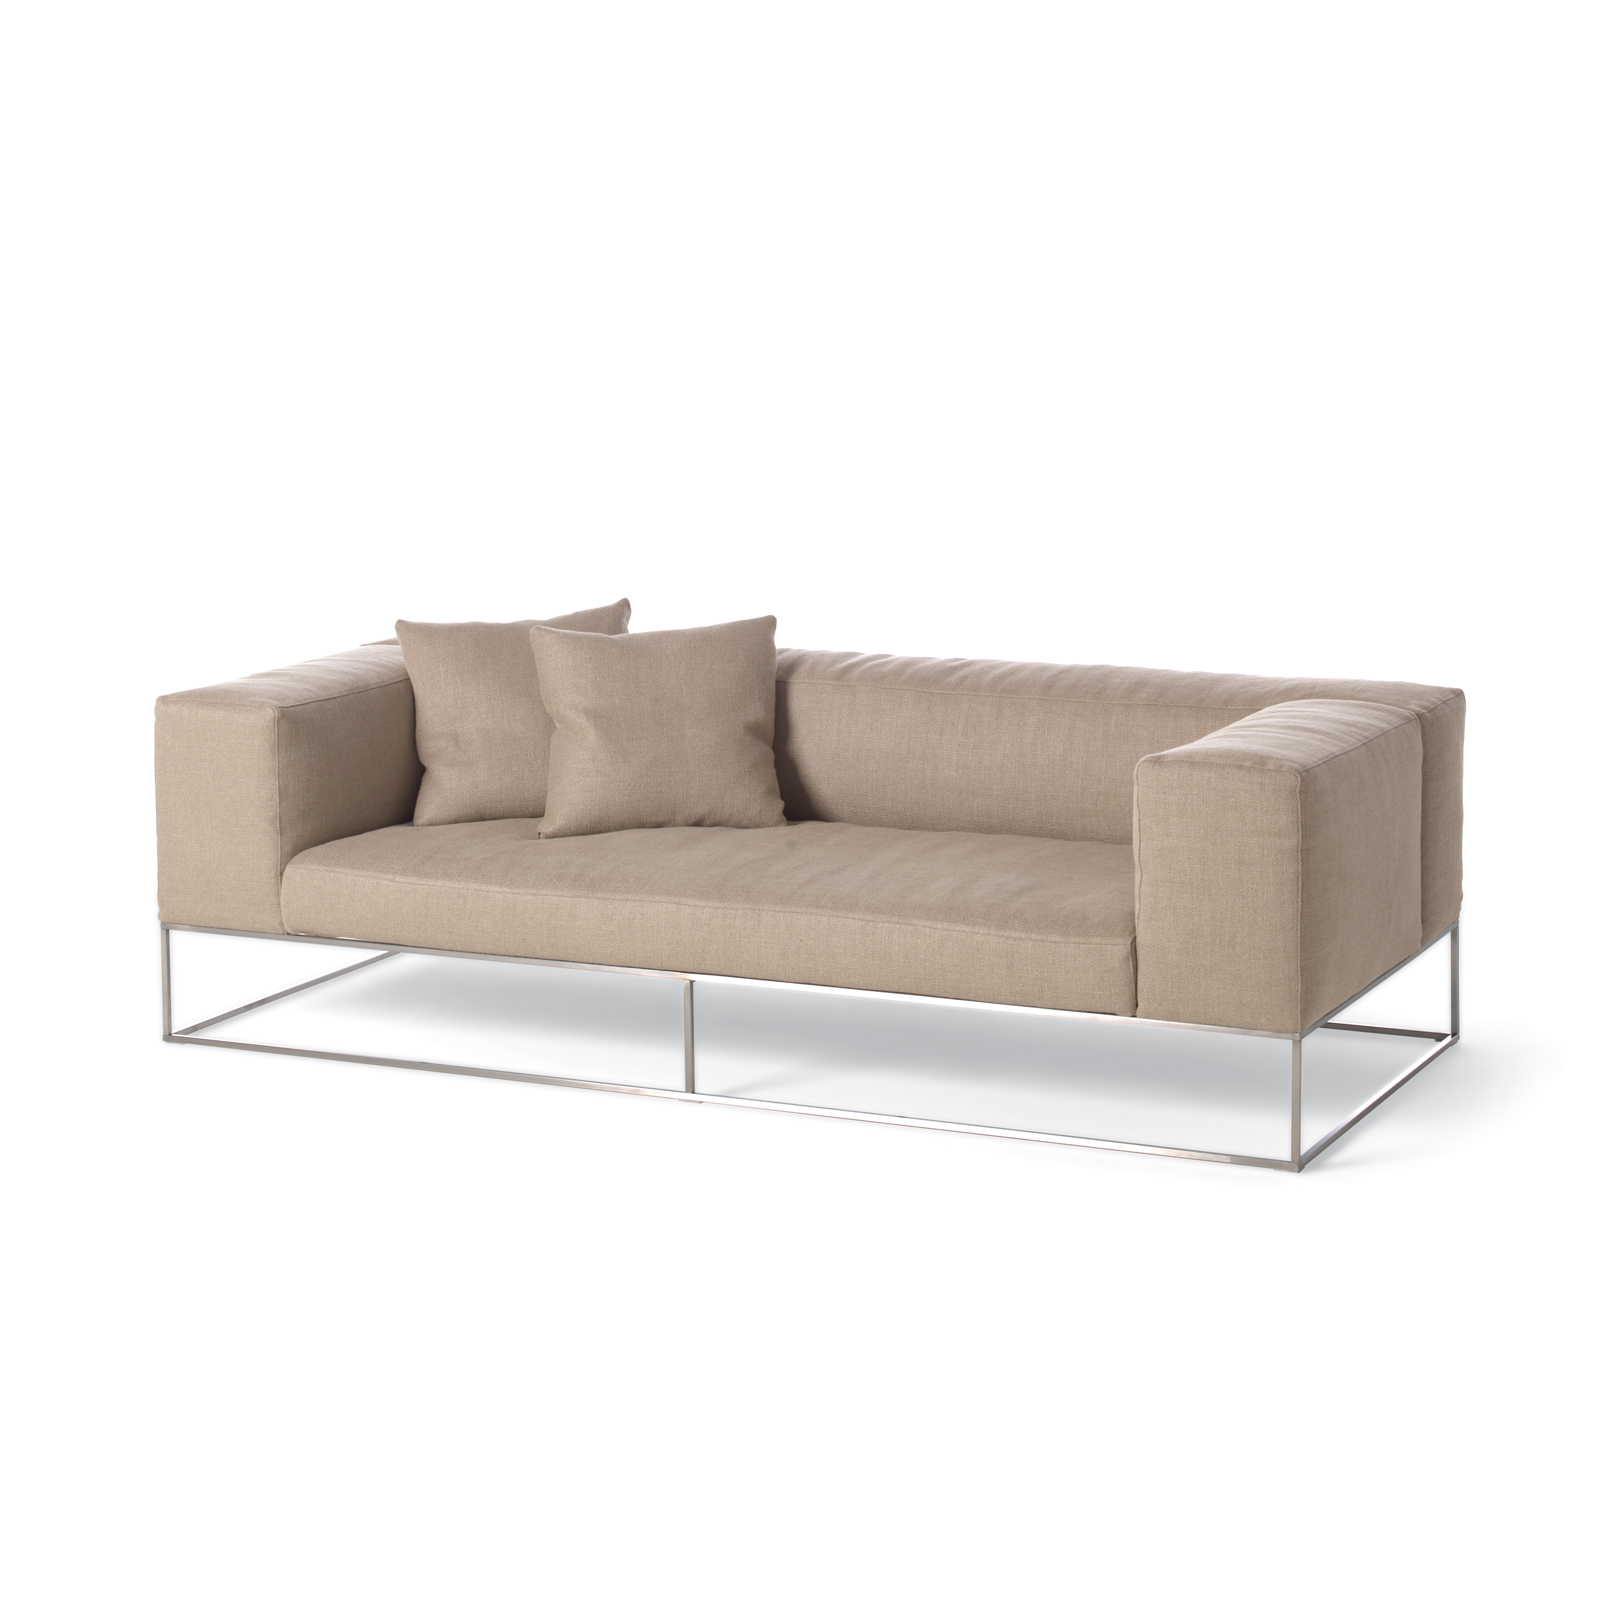 piero lissoni sofa